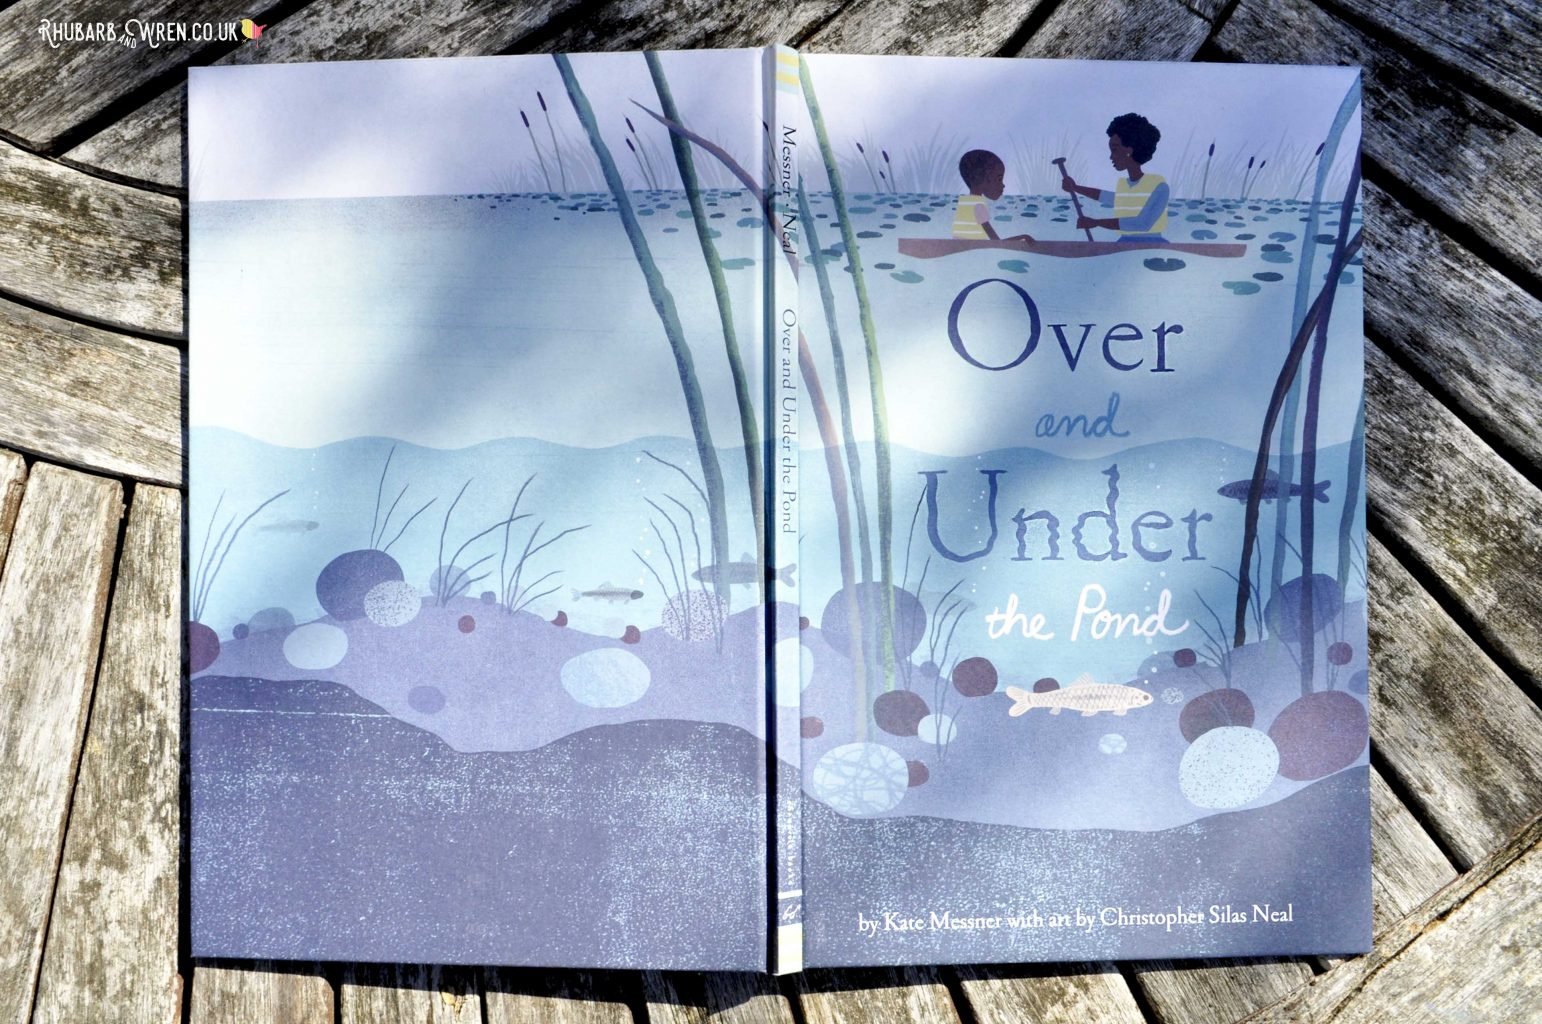 Children's picture book Over and Under the Pond